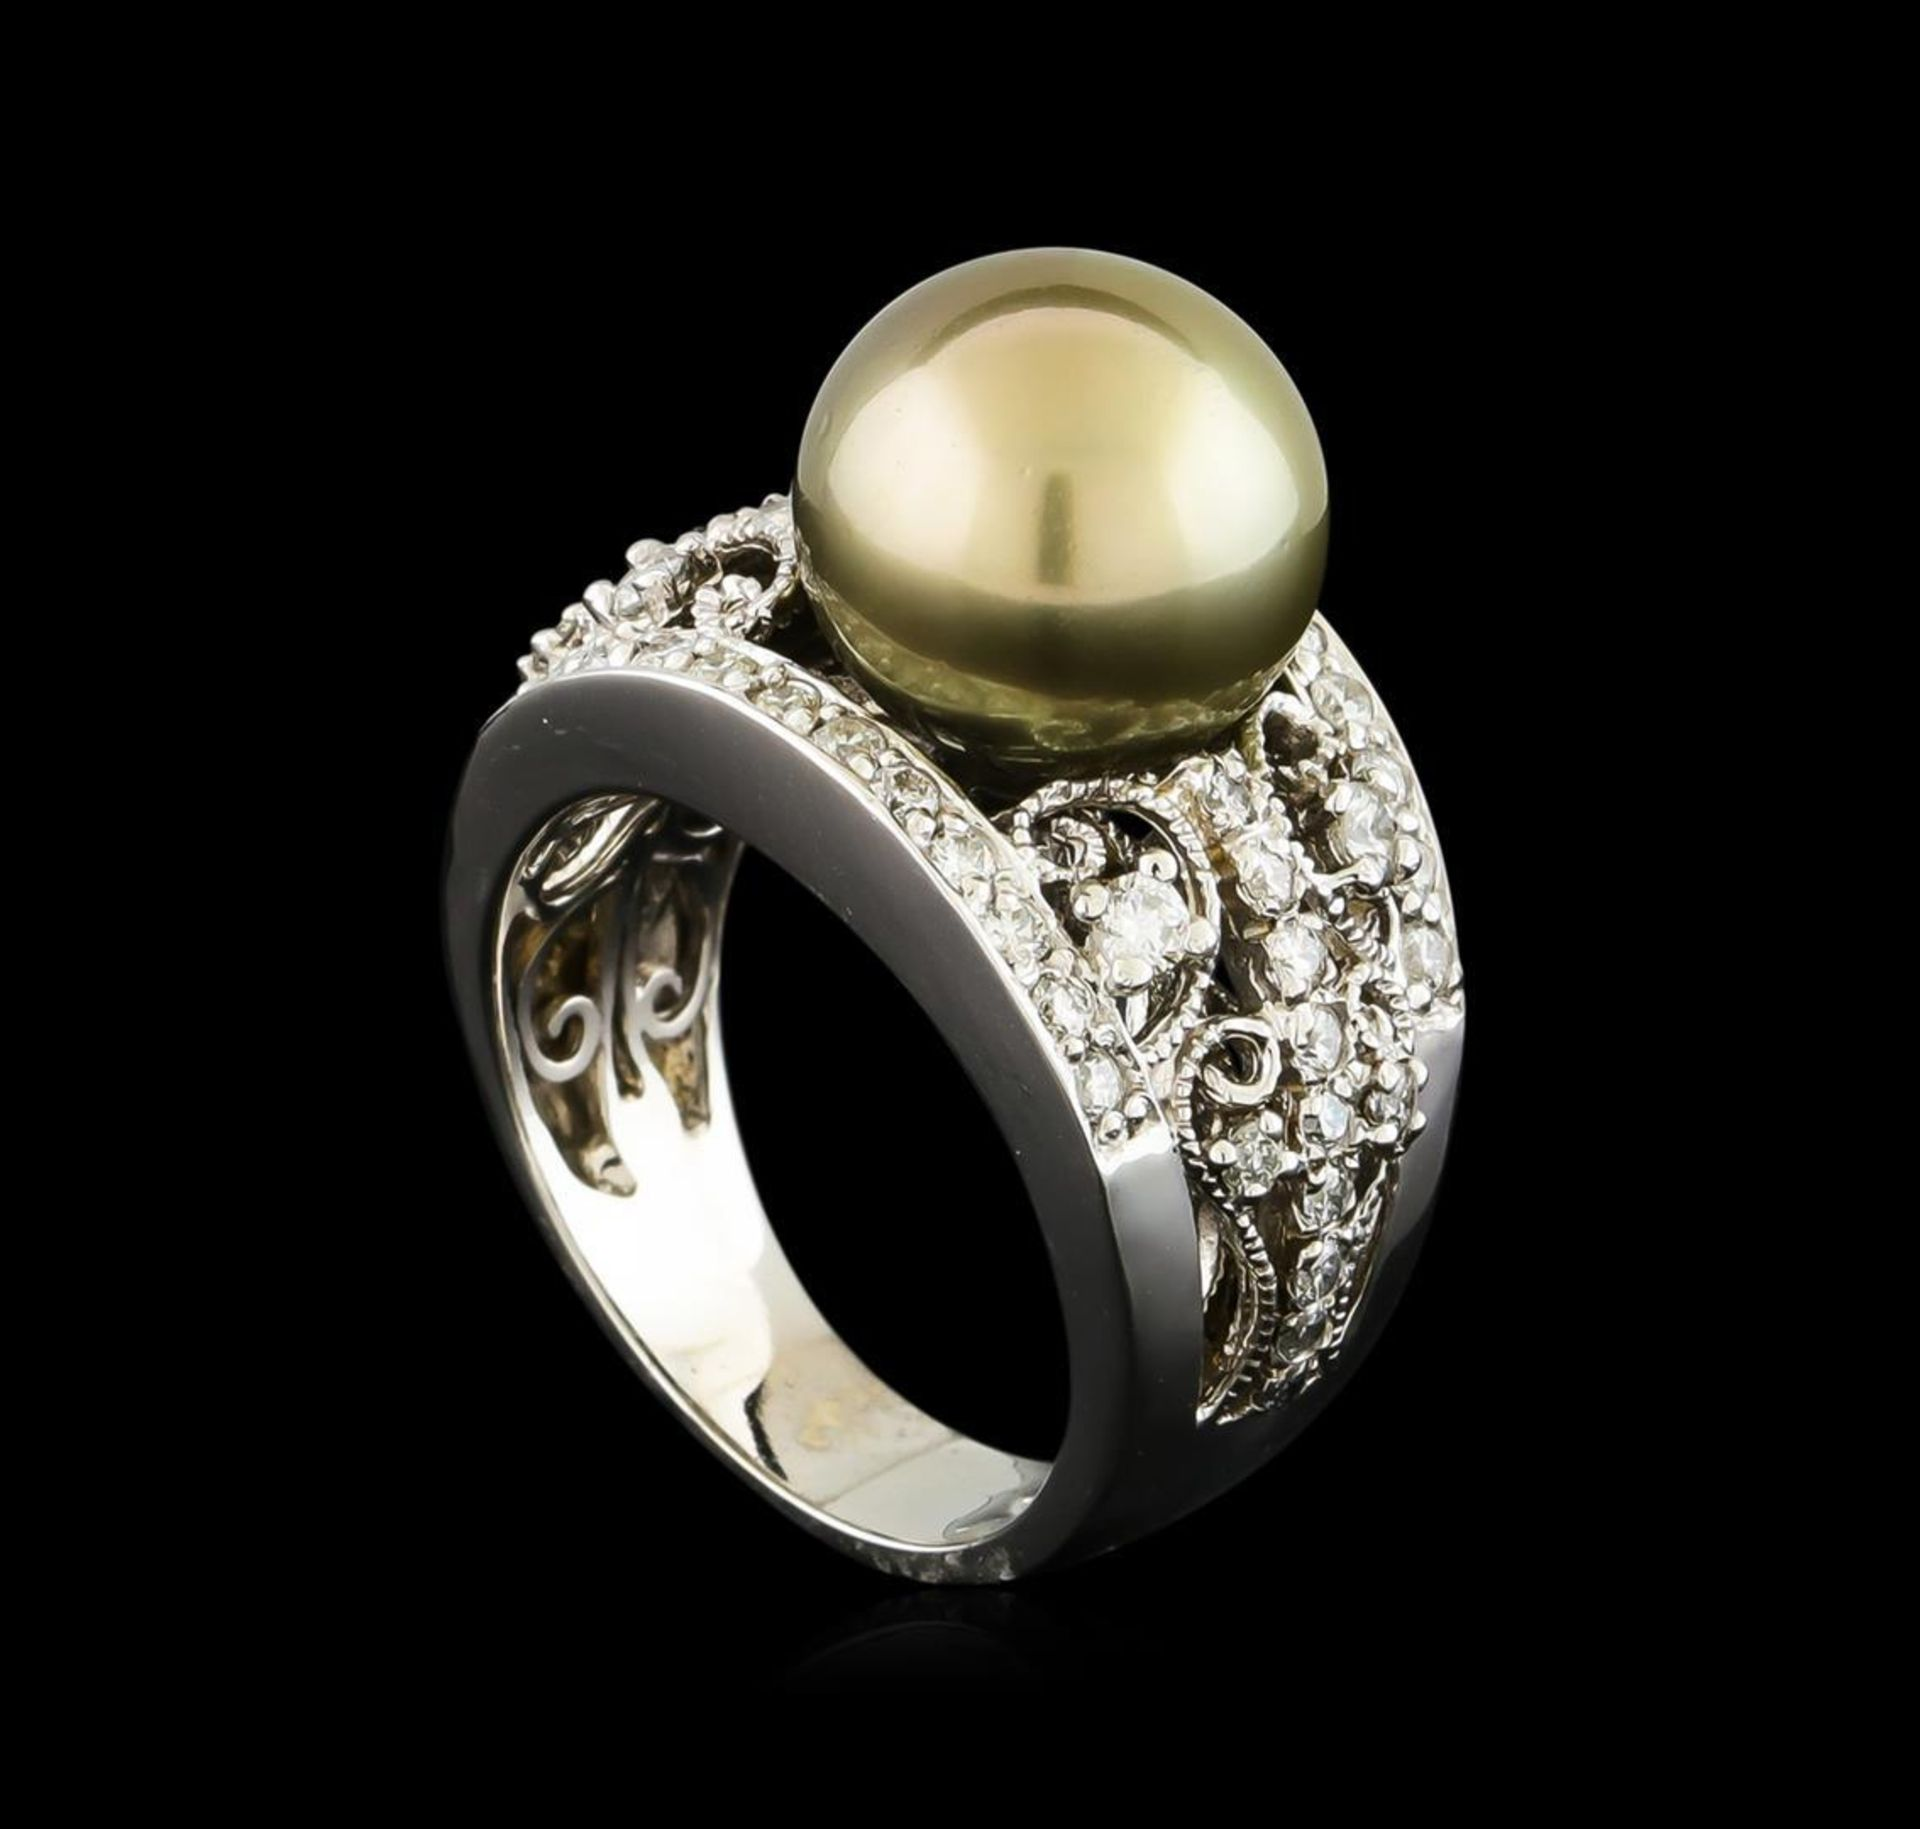 Tahitian Pearl and Diamond Ring - 14KT White Gold - Image 4 of 5